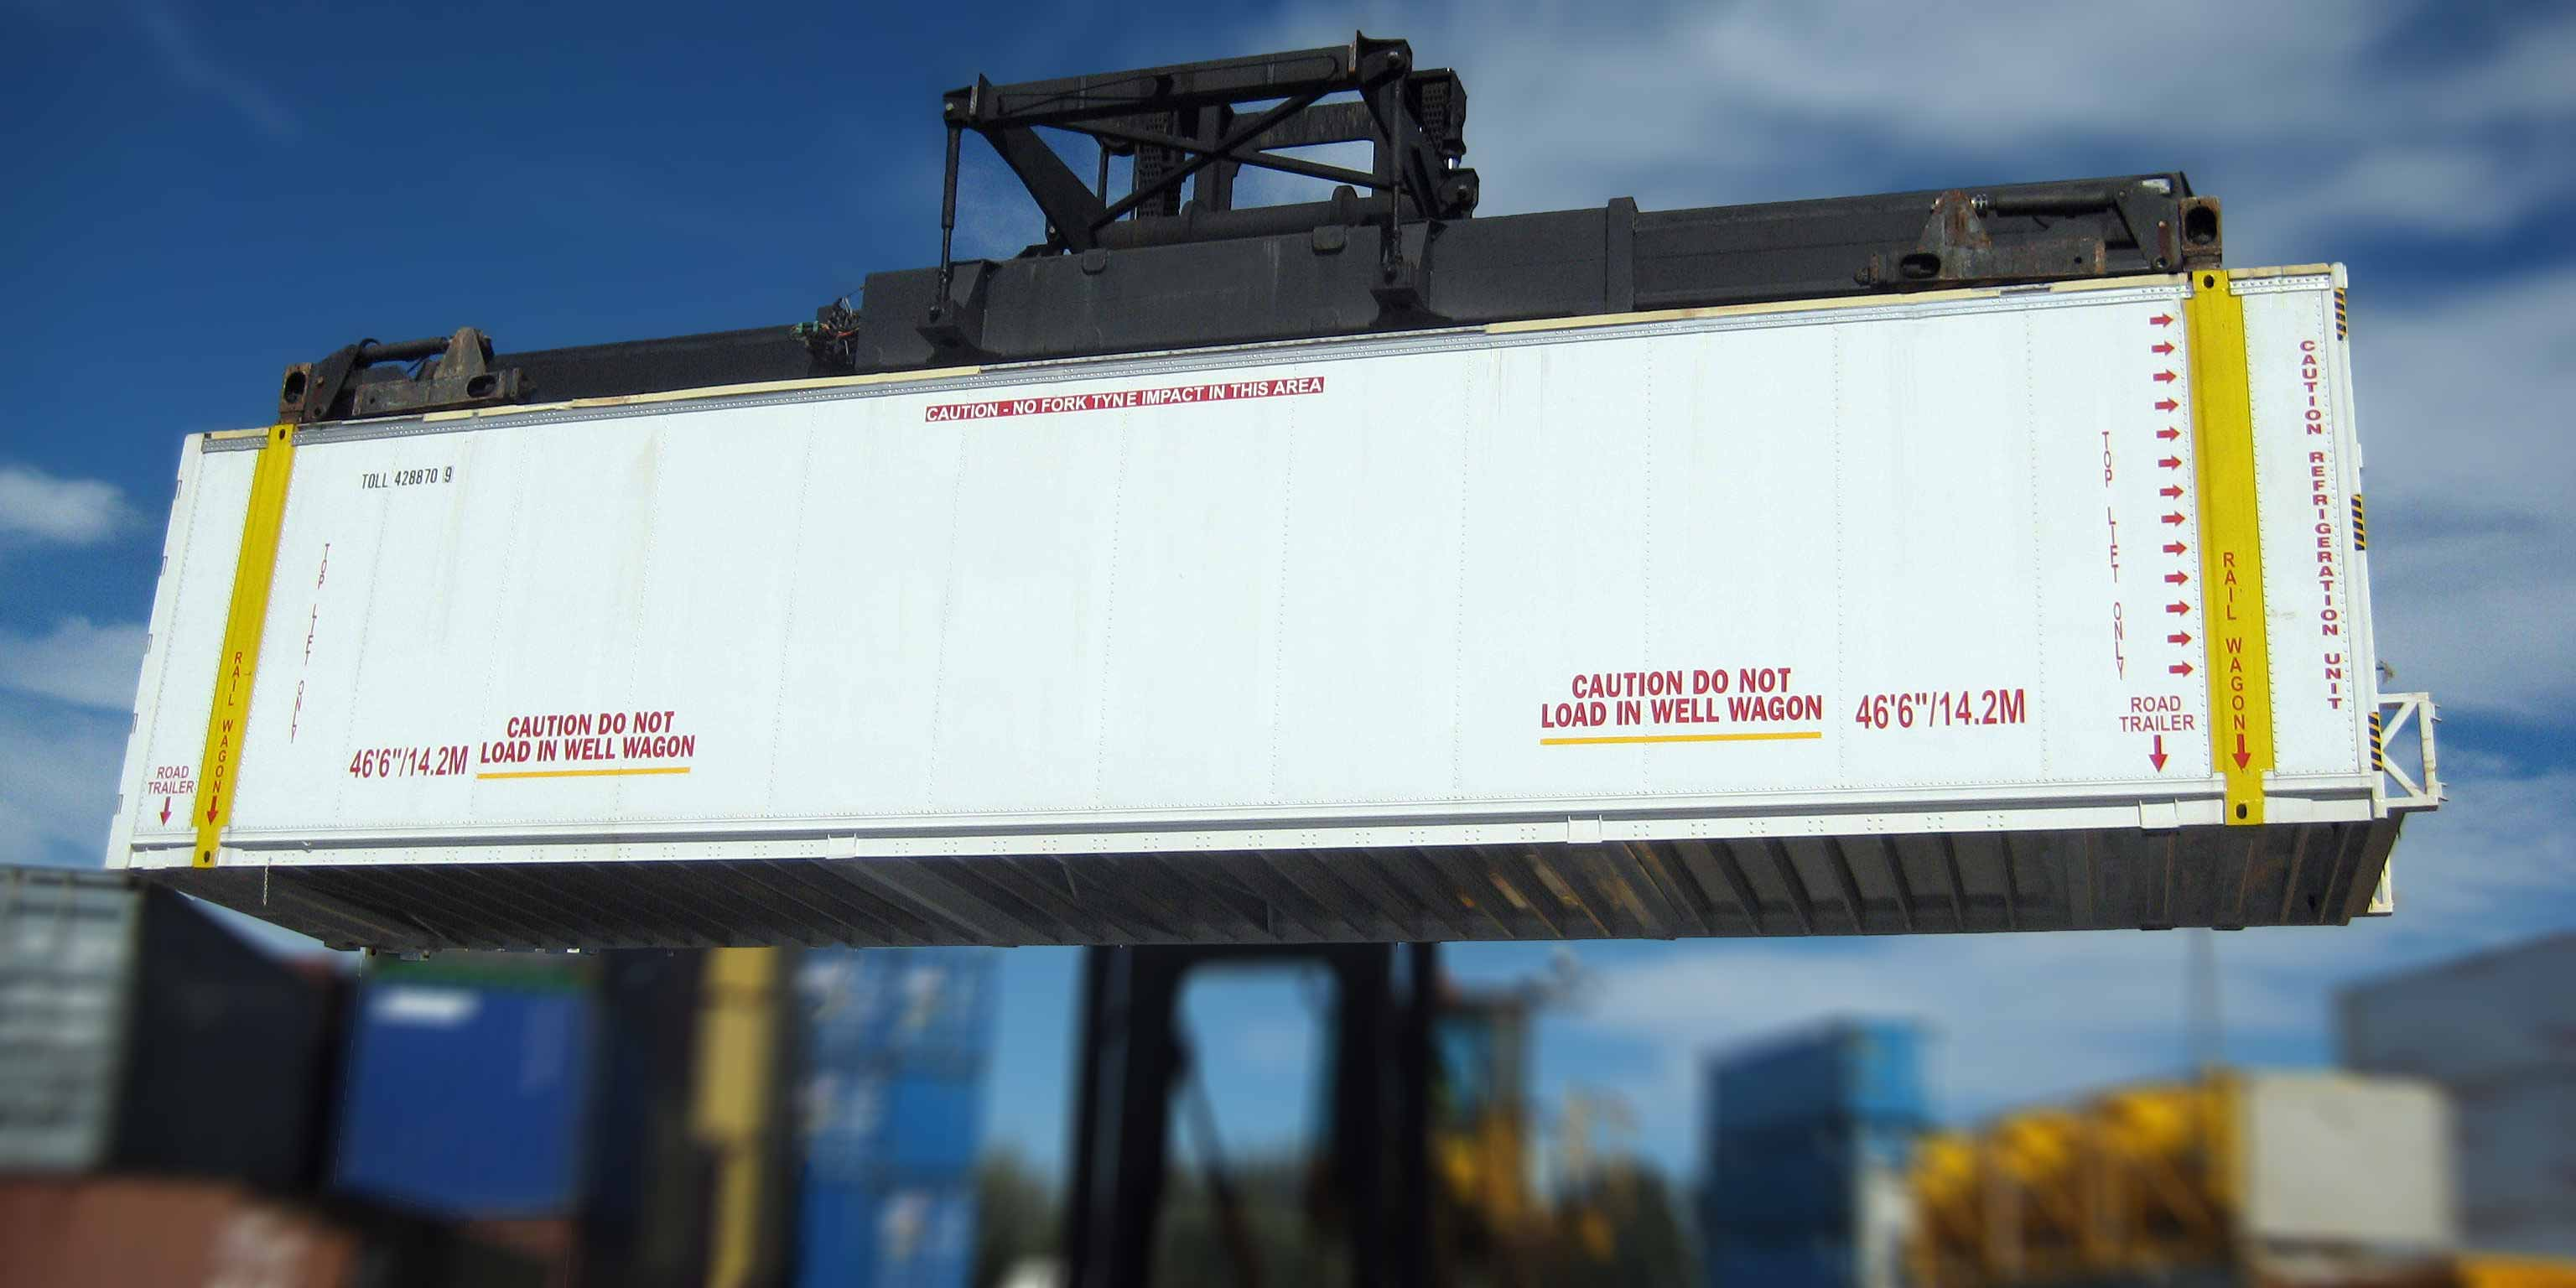 "46'6"" refrigerated container with light-weight aluminium construction and vertical tracking load bars."